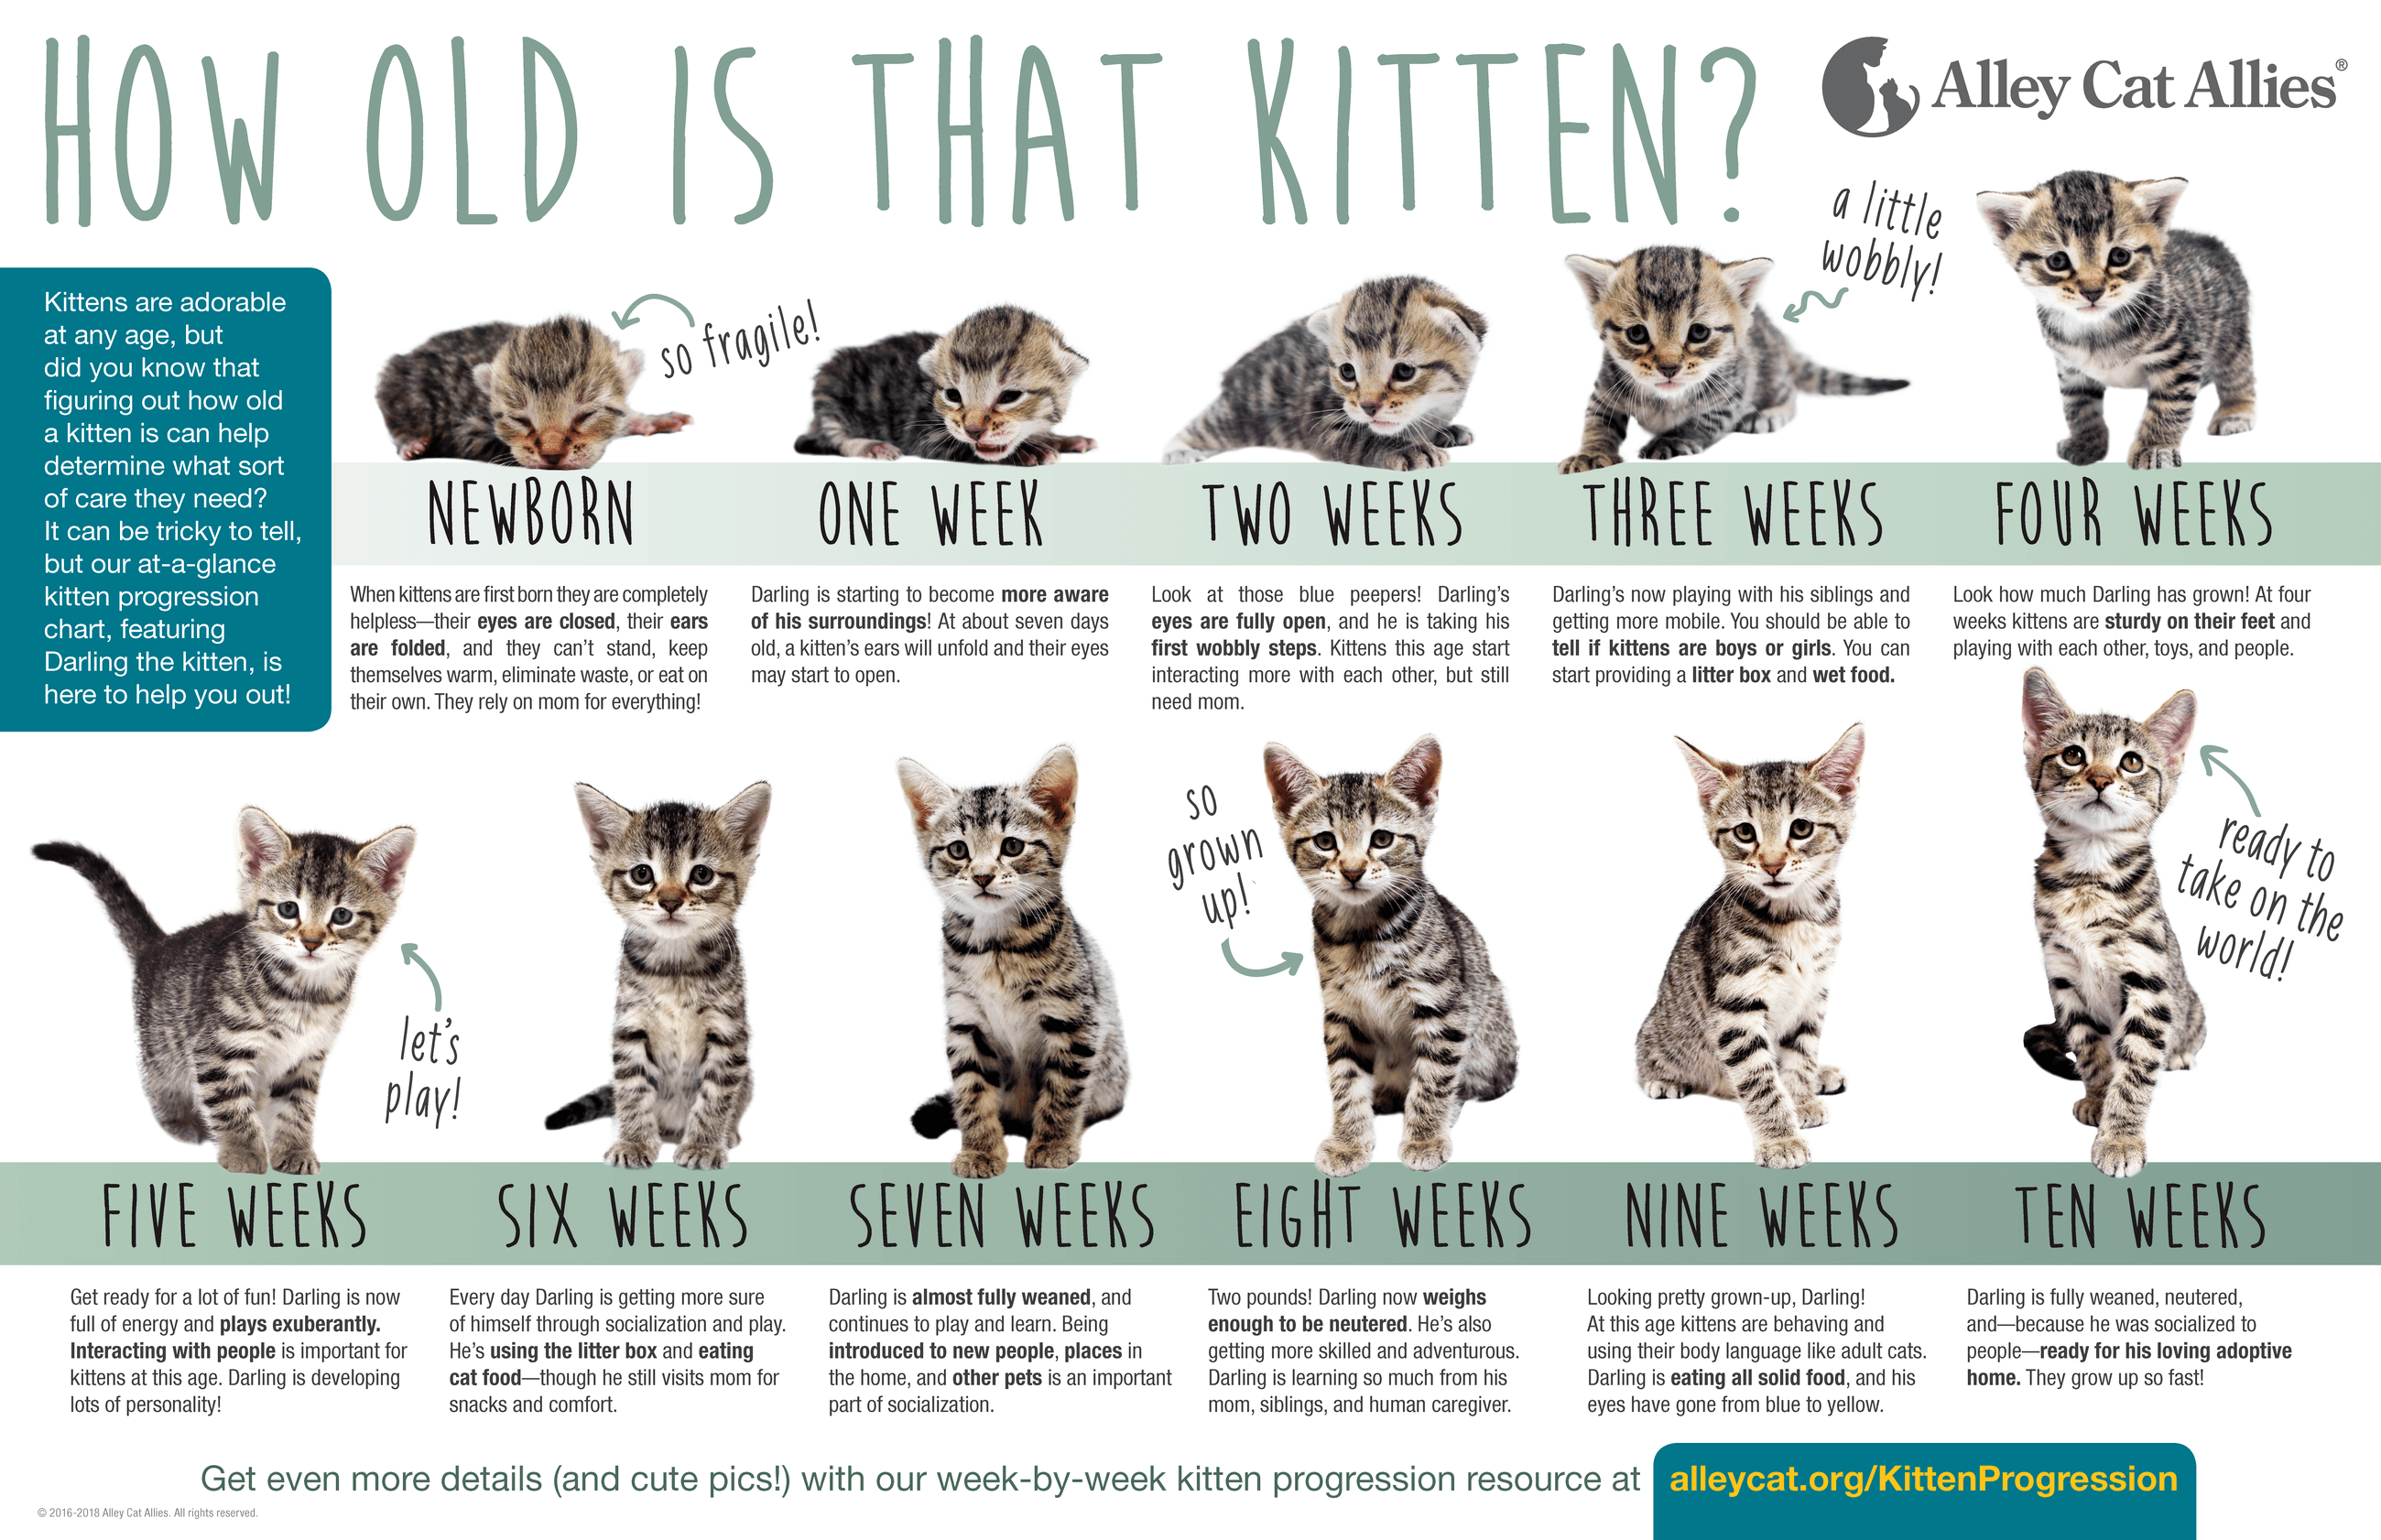 How old is that kitten? Kitten Progression At-A-Glance